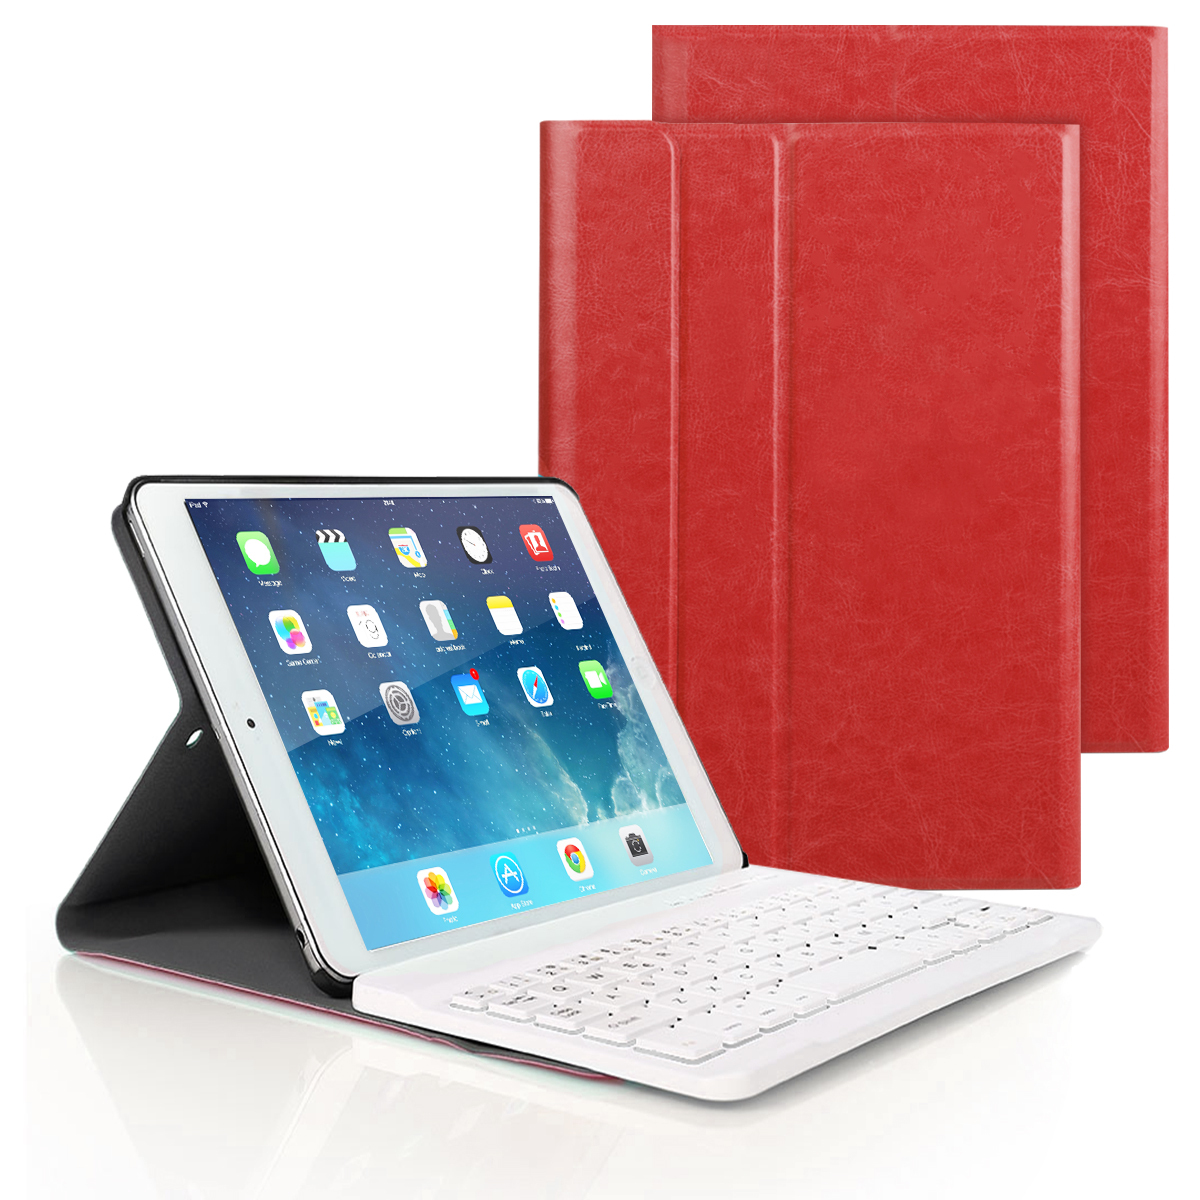 Smart Keyboard Case For iPad Air 1/2 Pro9.7 ipad 2017 2018 PU Leather Stand Cover Foldable Case for ipad 5 6